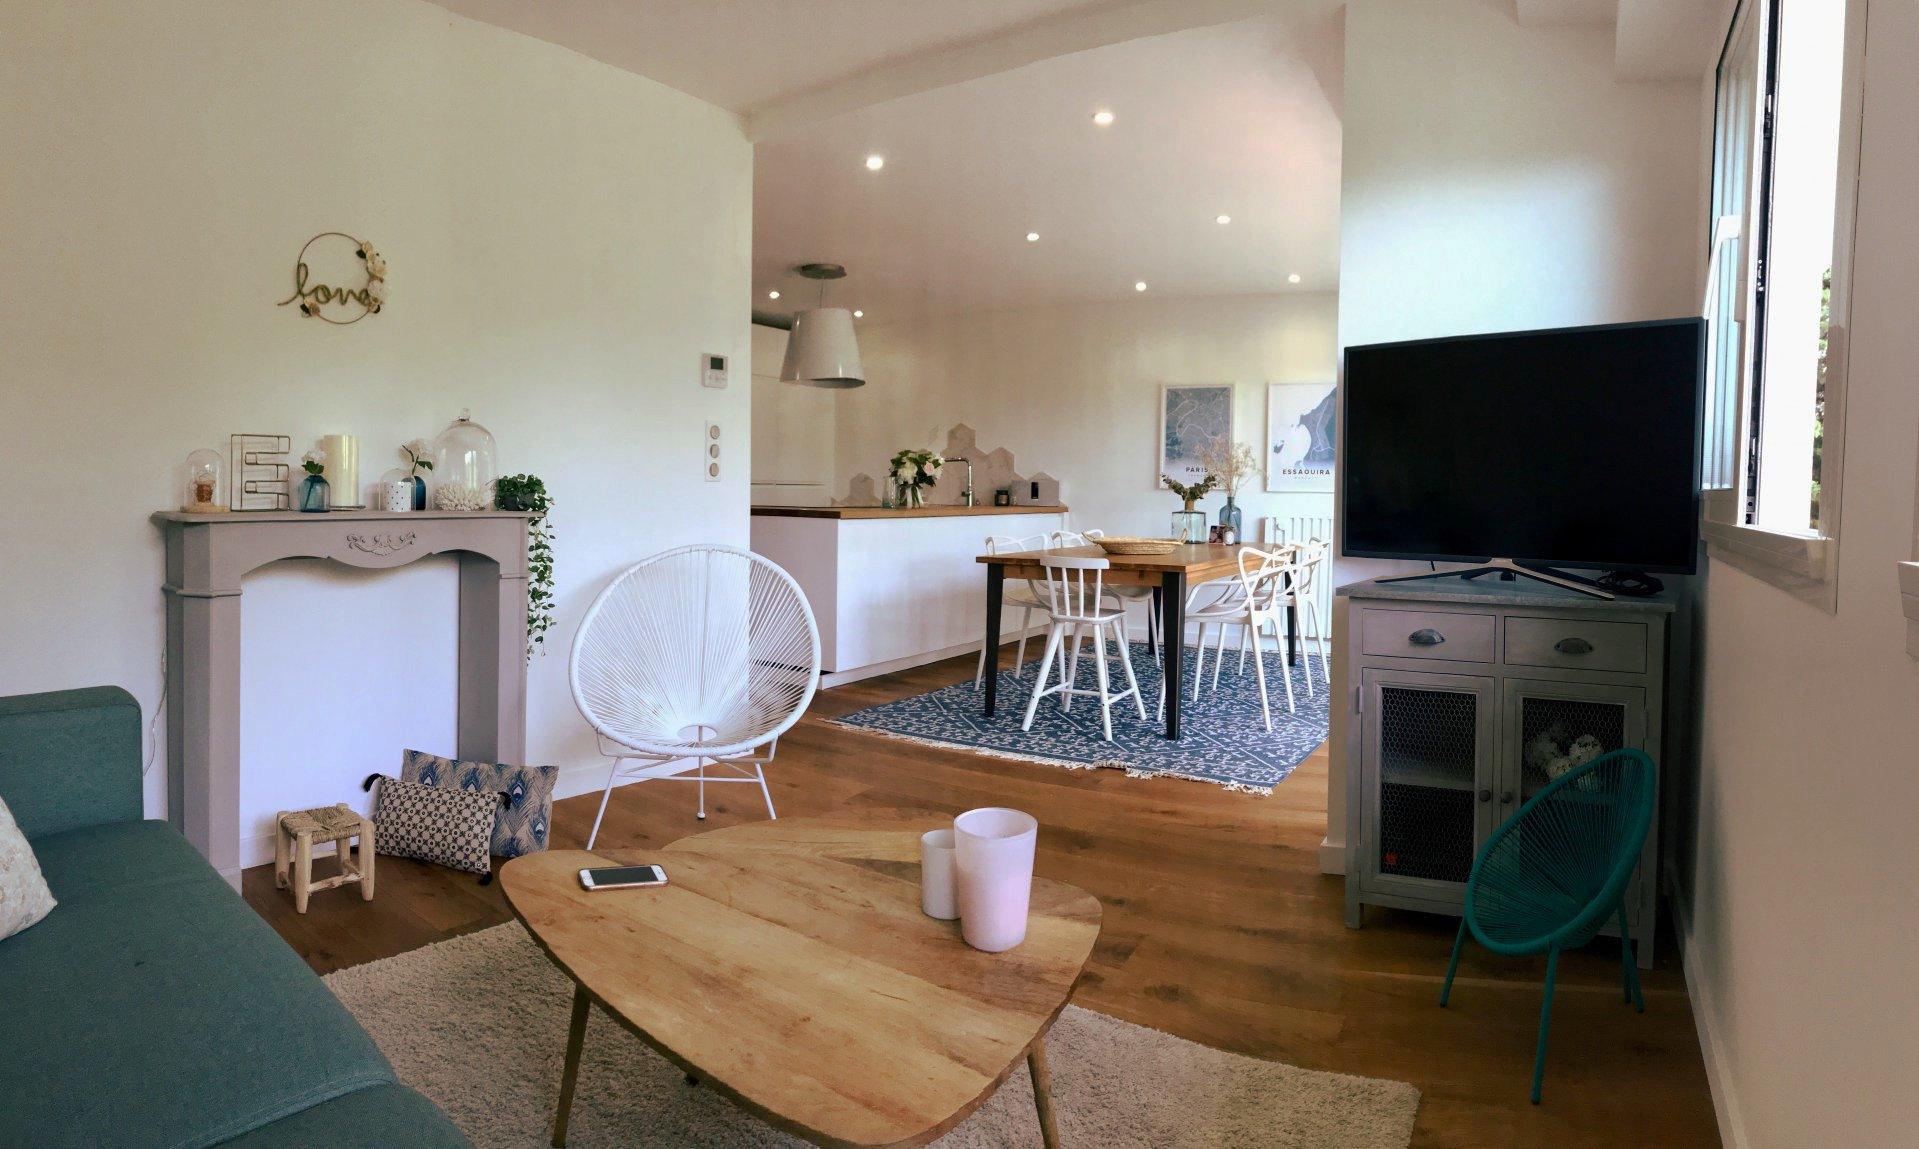 CANNES MONTFLEURY 4 rooms of 88 m2 new with balcony  600 m from the rue d'Antibes